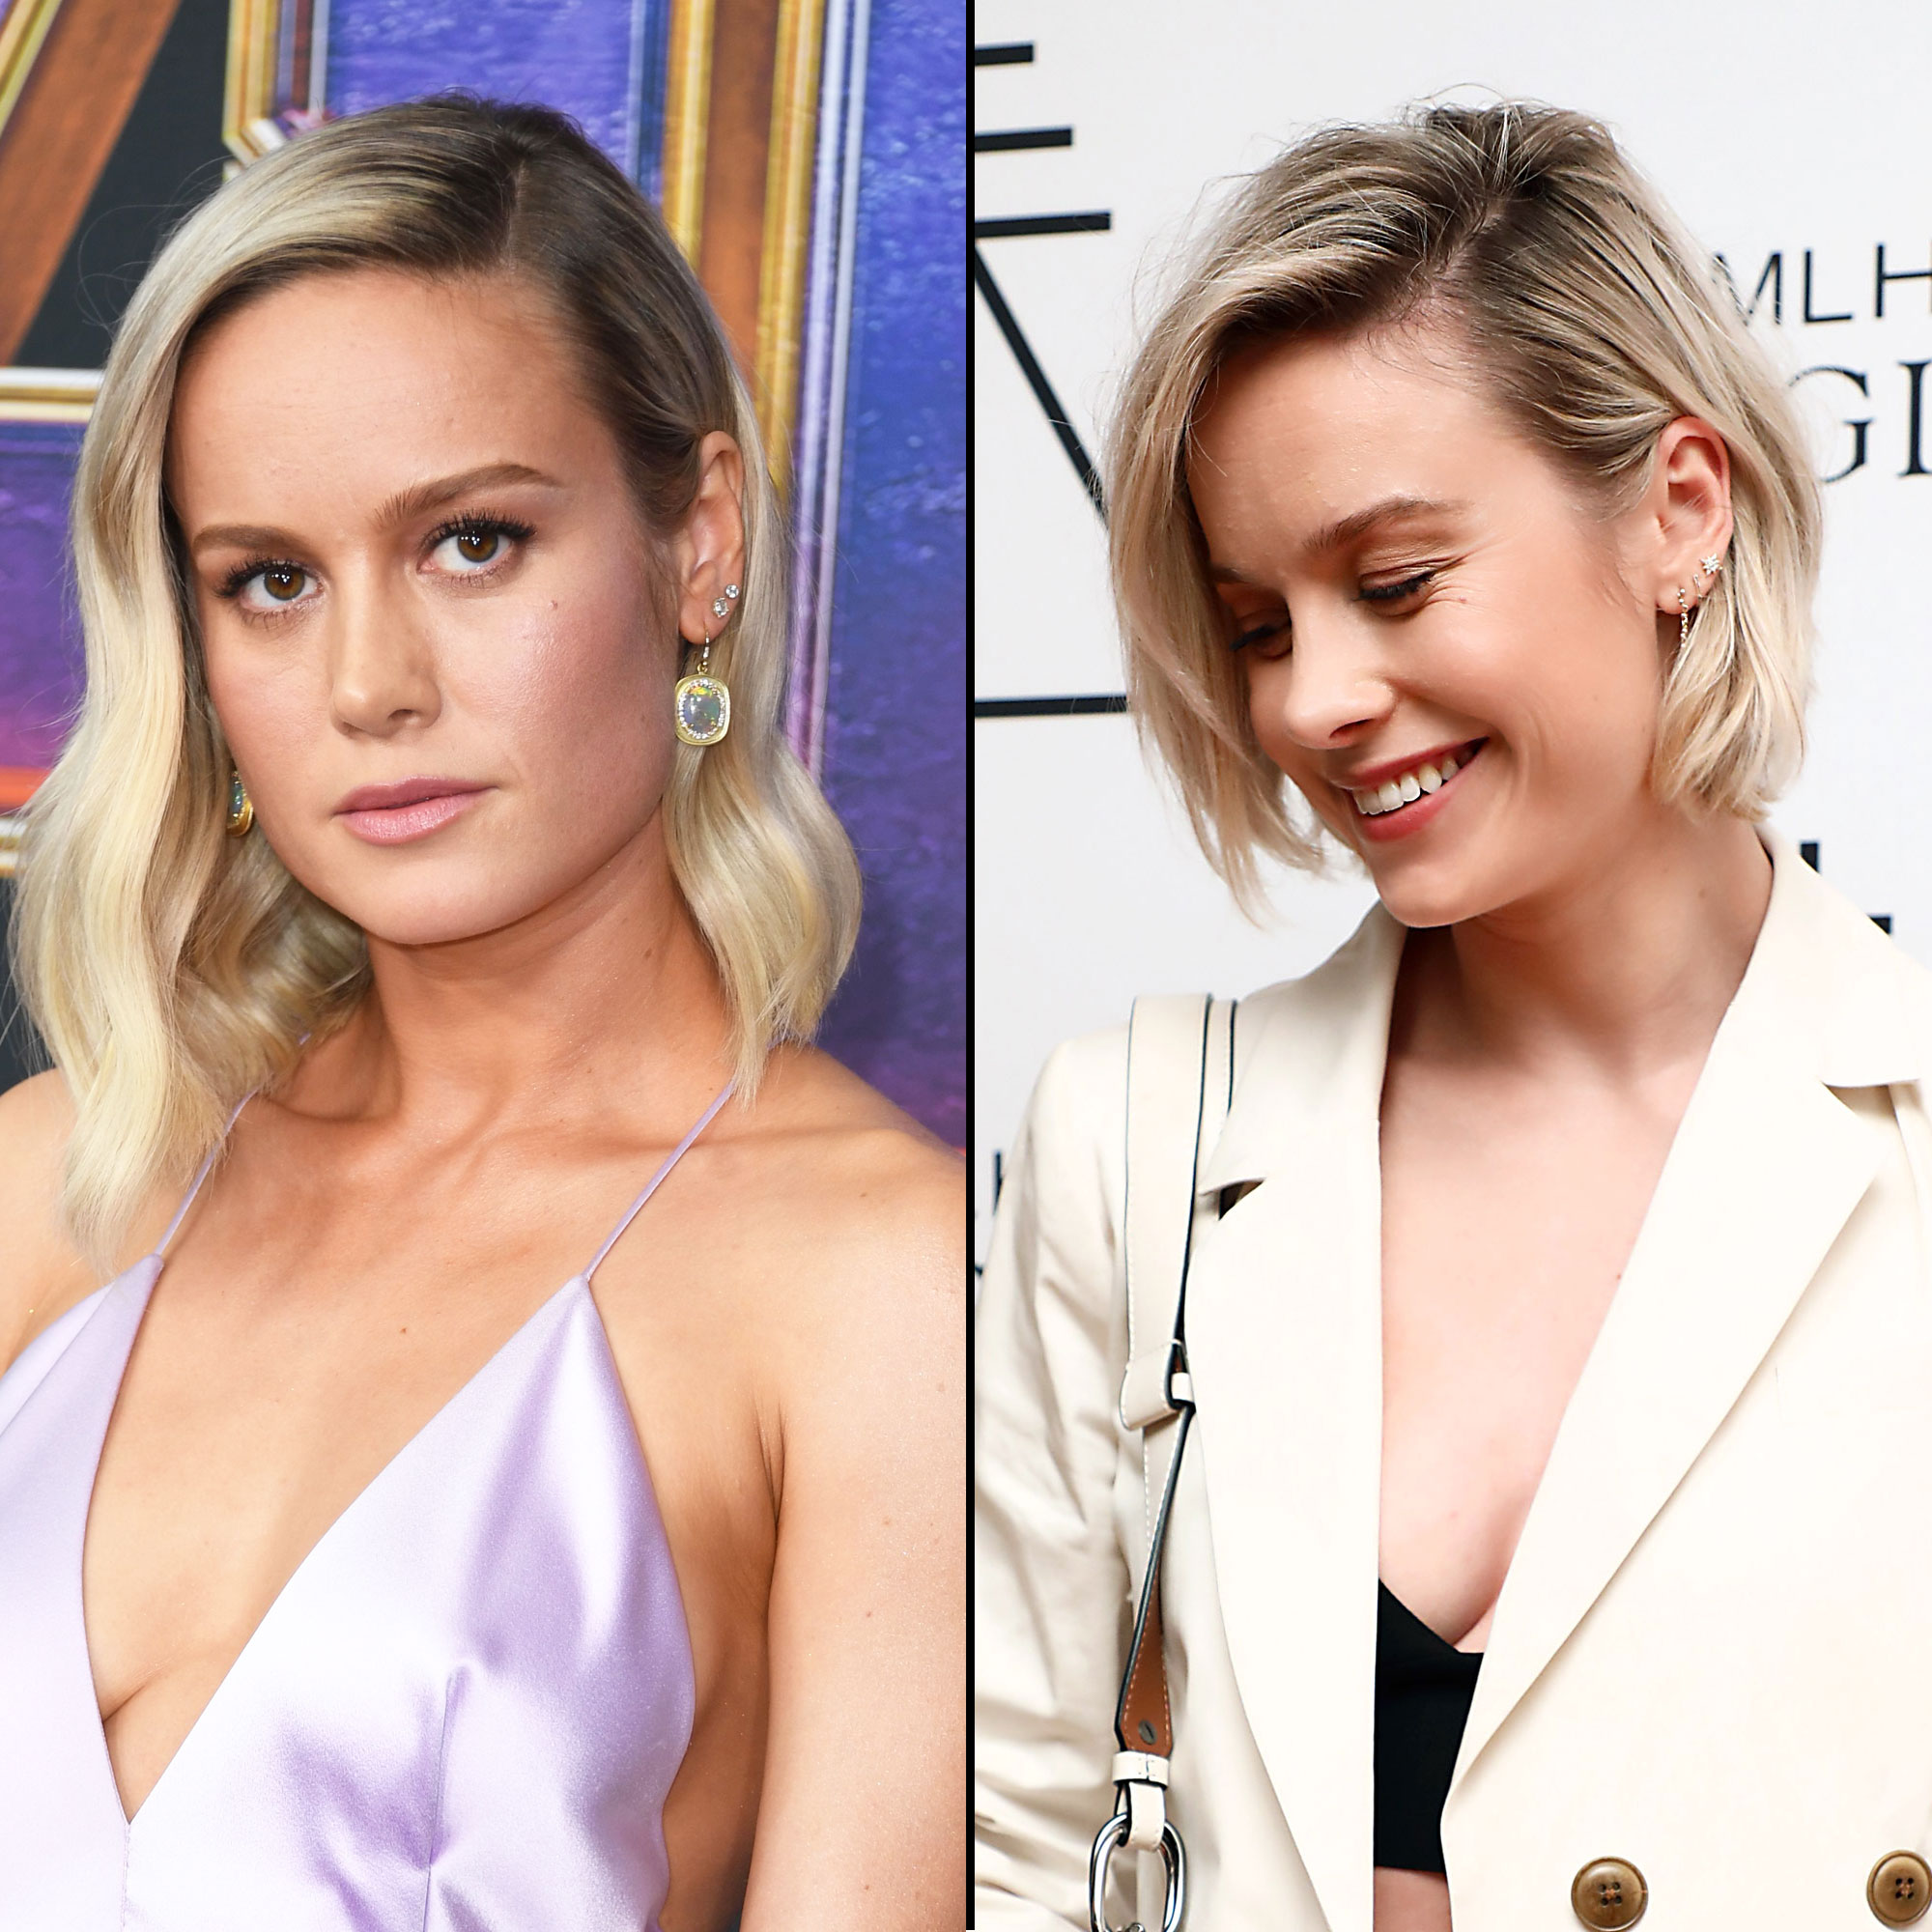 Brie Larson hair transformation - The Captain Marvel star showed off her freshly chopped bob at the MLH Sigil Fragrance launch party on April 30.